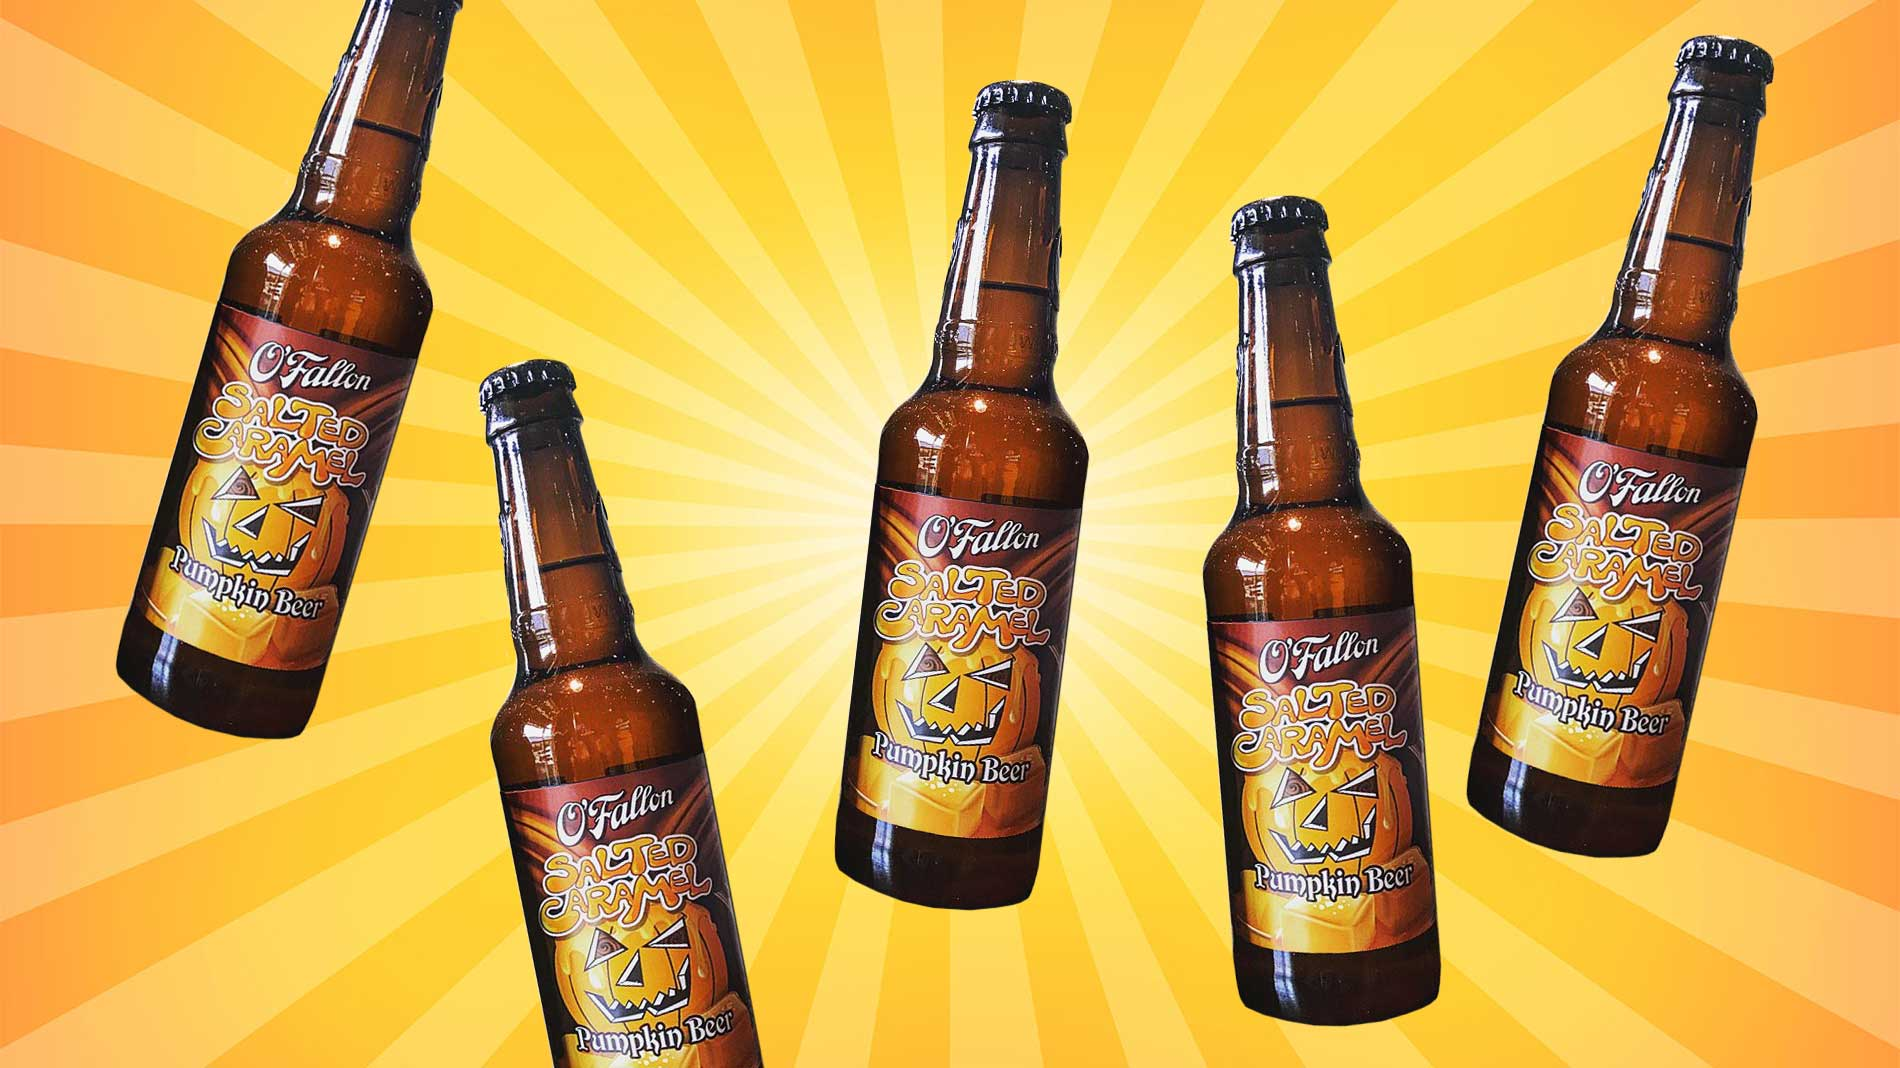 bottles of o'fallon salted caramel pumpkin ale on an orange and yellow striped background